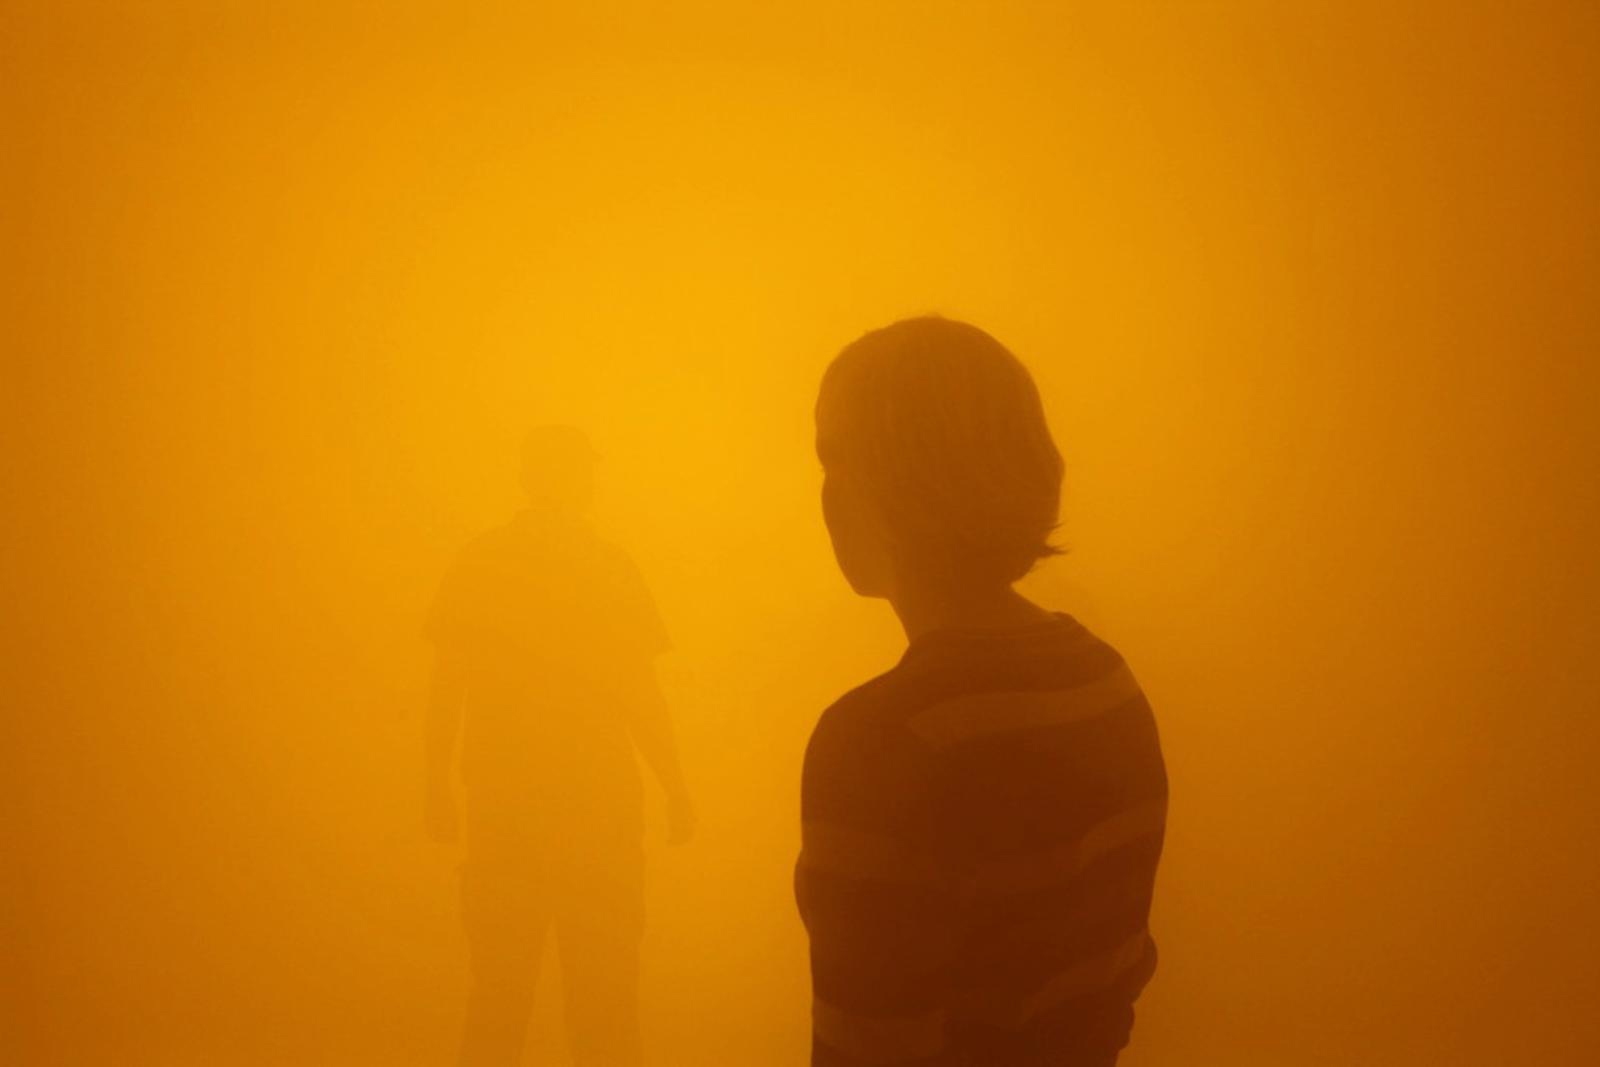 Olafur Eliasson: In Real Life at Tate Modern 11 July 2019 - 5 January 2020